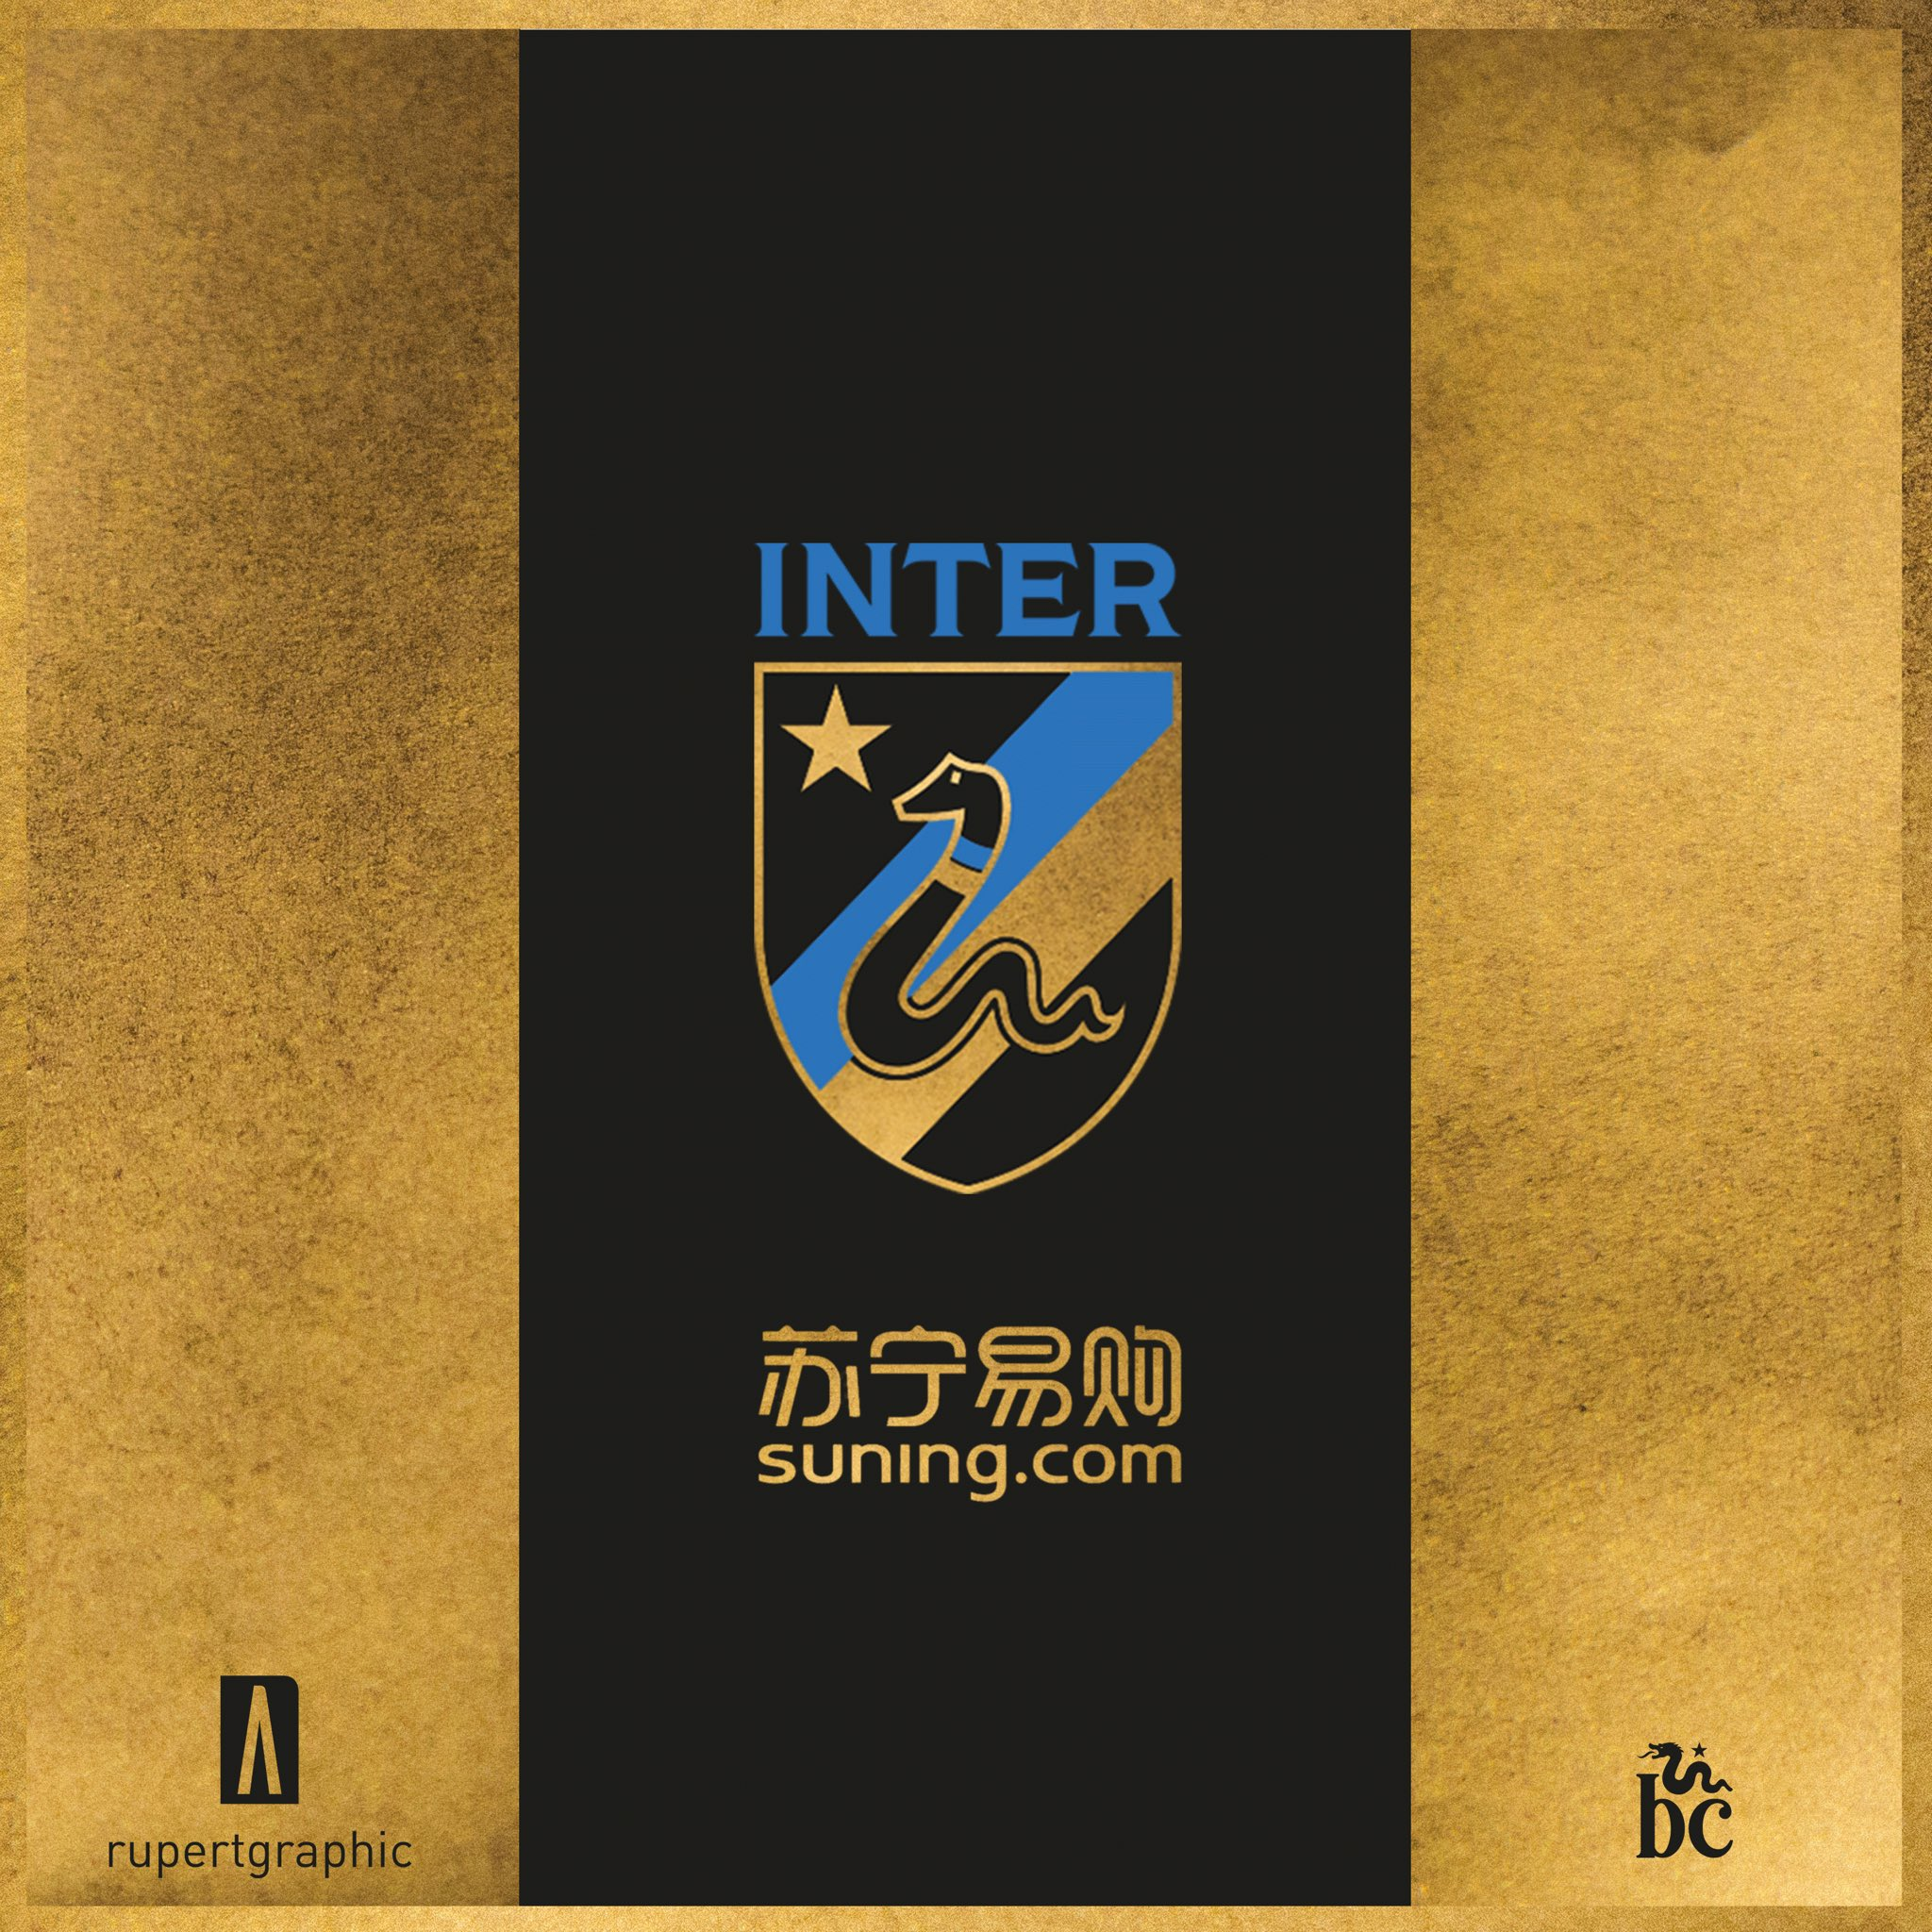 Coming soom...#inter #suning #pes #concept #biscione  #gold https://t.co/85VmZJH3nT